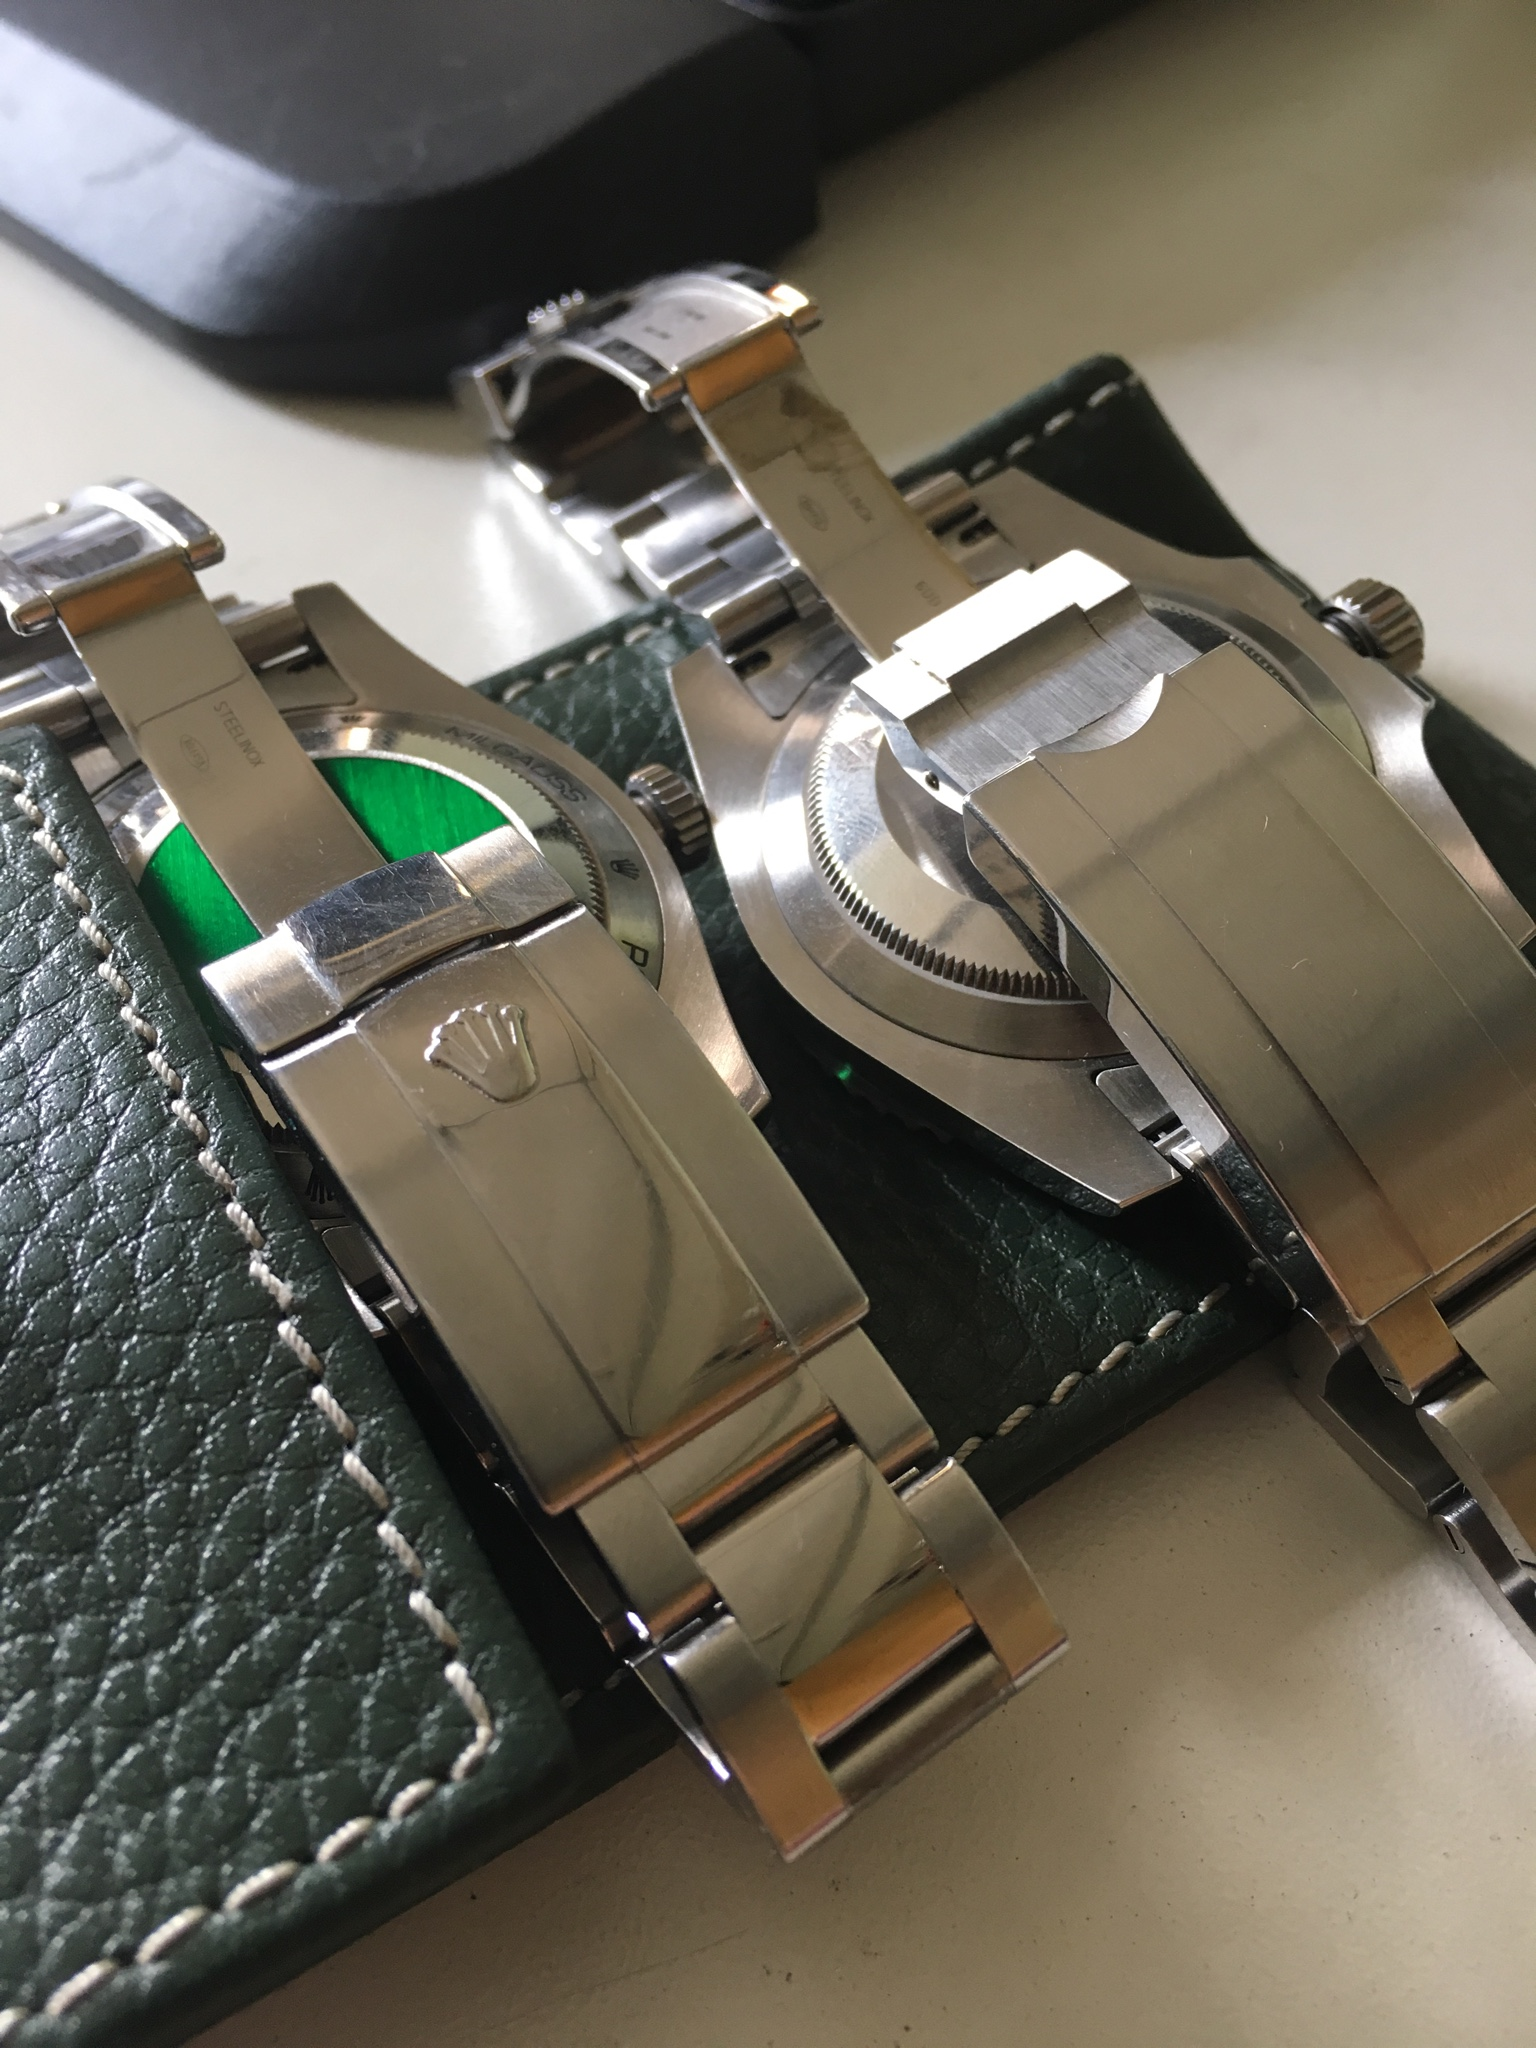 Another Look On The Bracelet Thought I Can Do A Comparison With My Authentic Submariner But They Are Diffe Anyway Milgauss Is